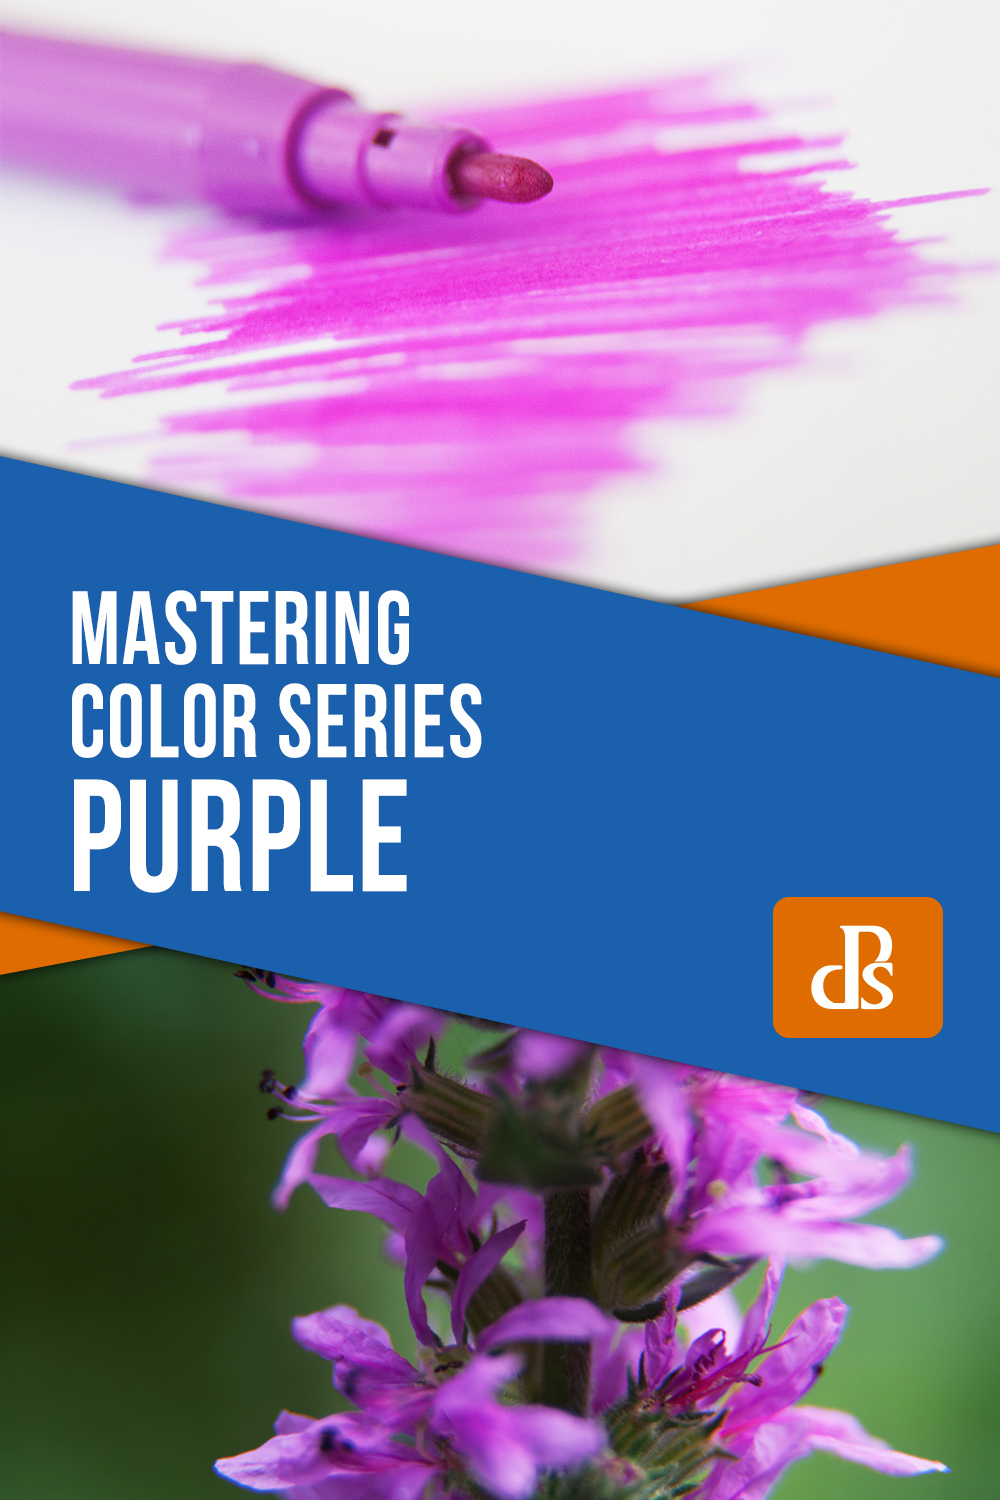 Mastering Color Series – The Psychology and Evolution of the Color PURPLE and its use in Photography